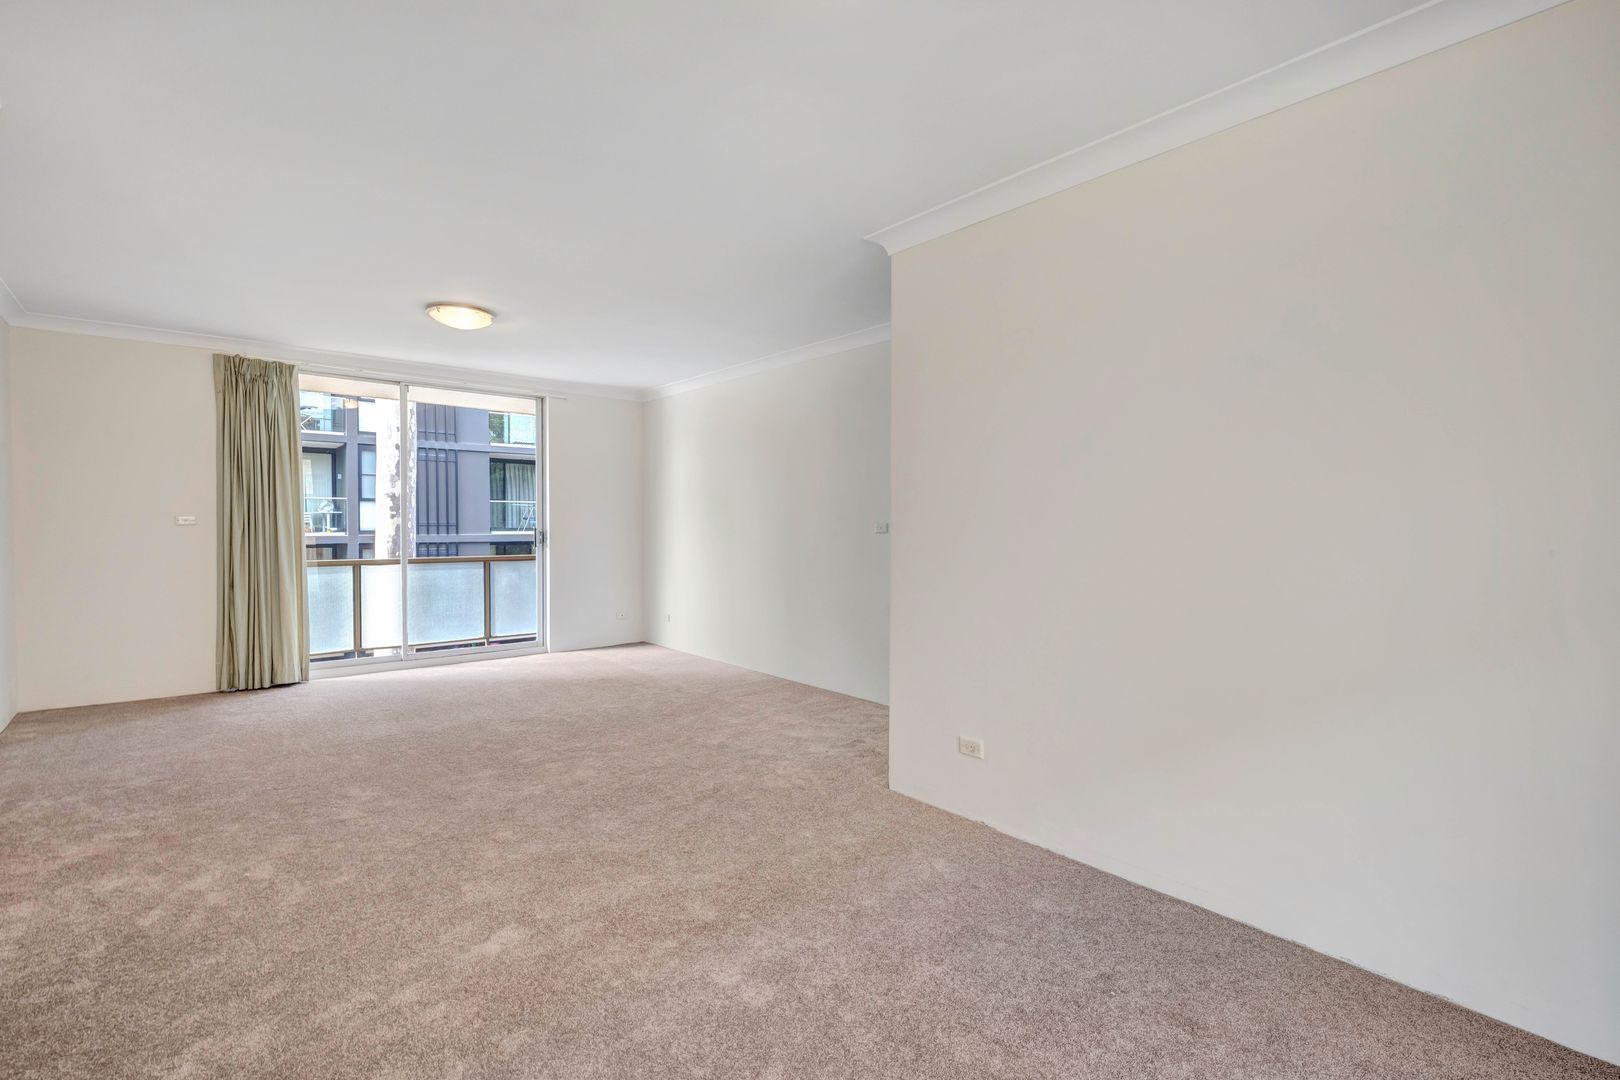 9/38 Anderson Street, Chatswood NSW 2067, Image 1